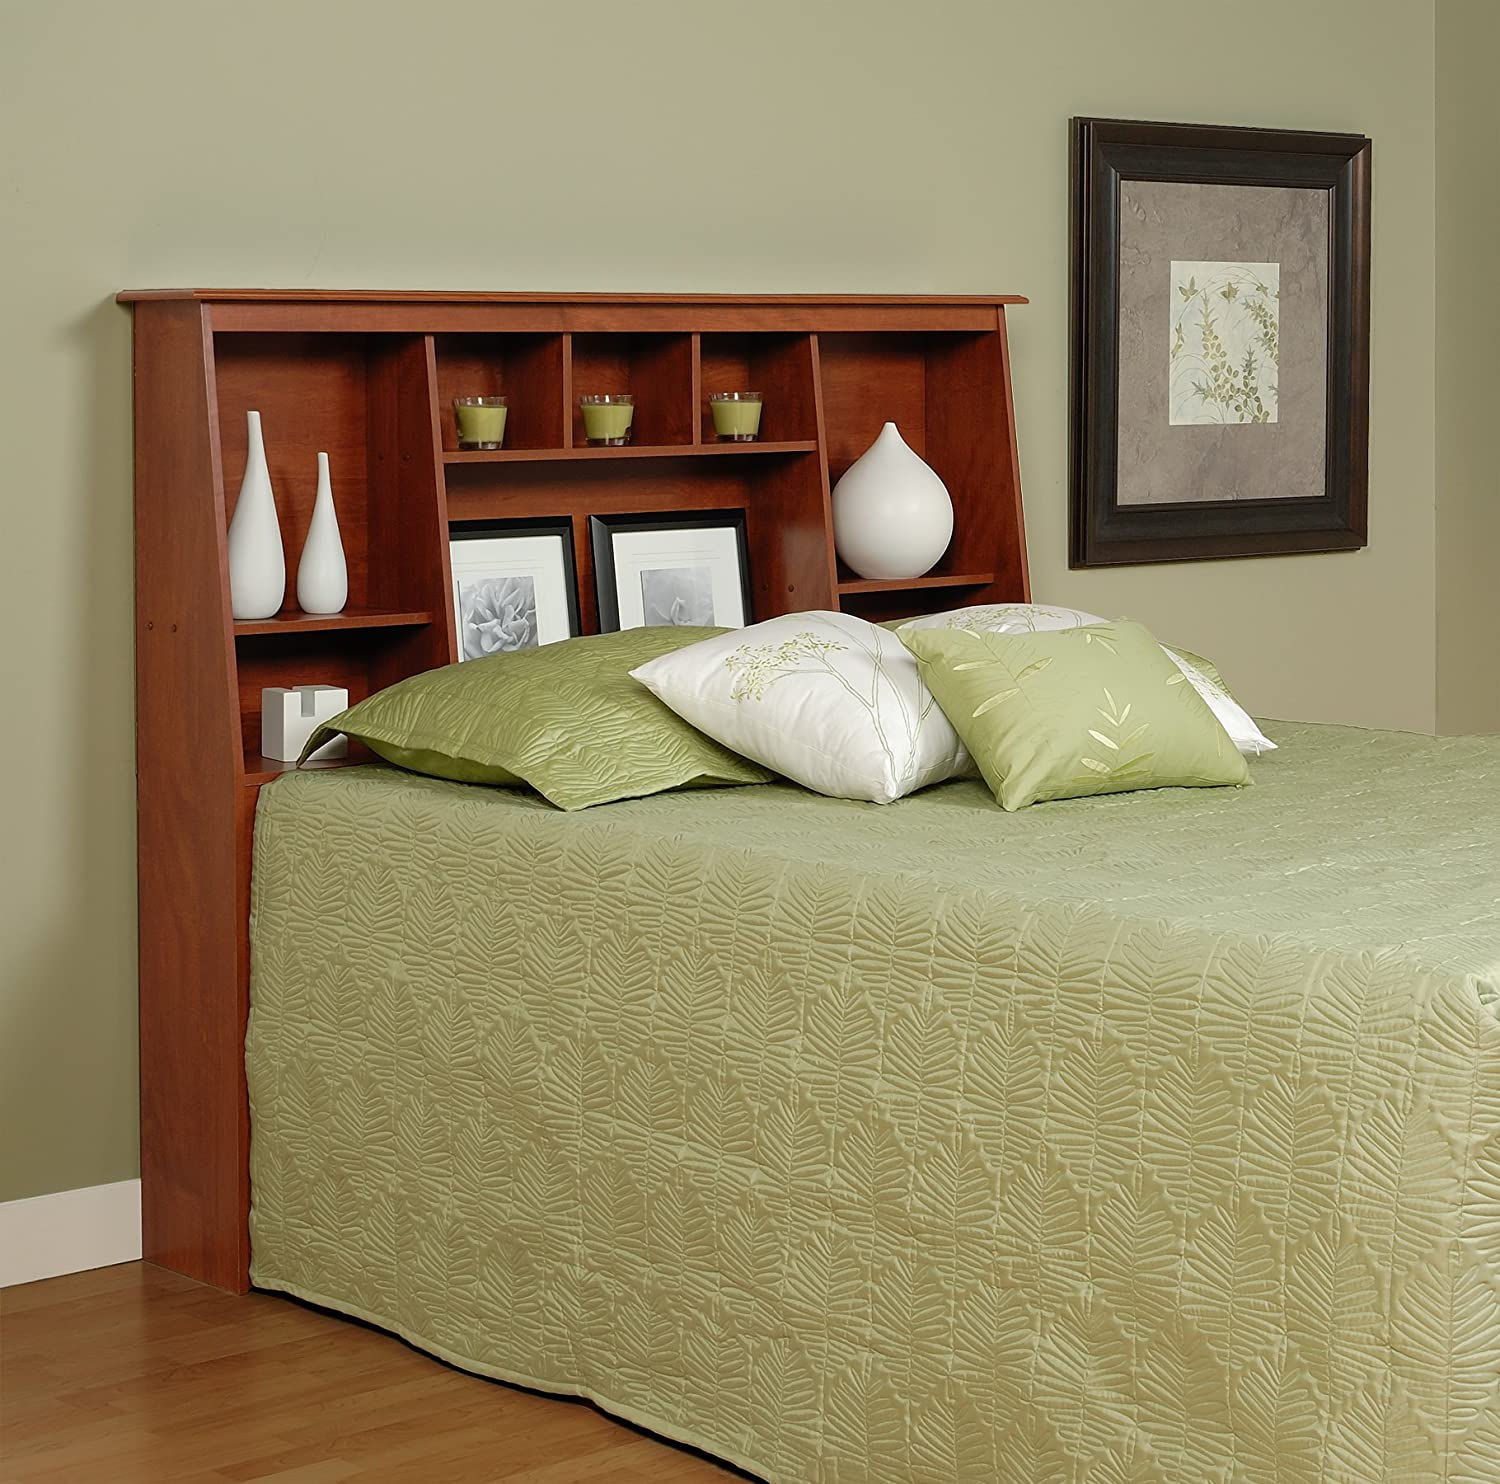 headboards twin full single bed headboard size double upholstered